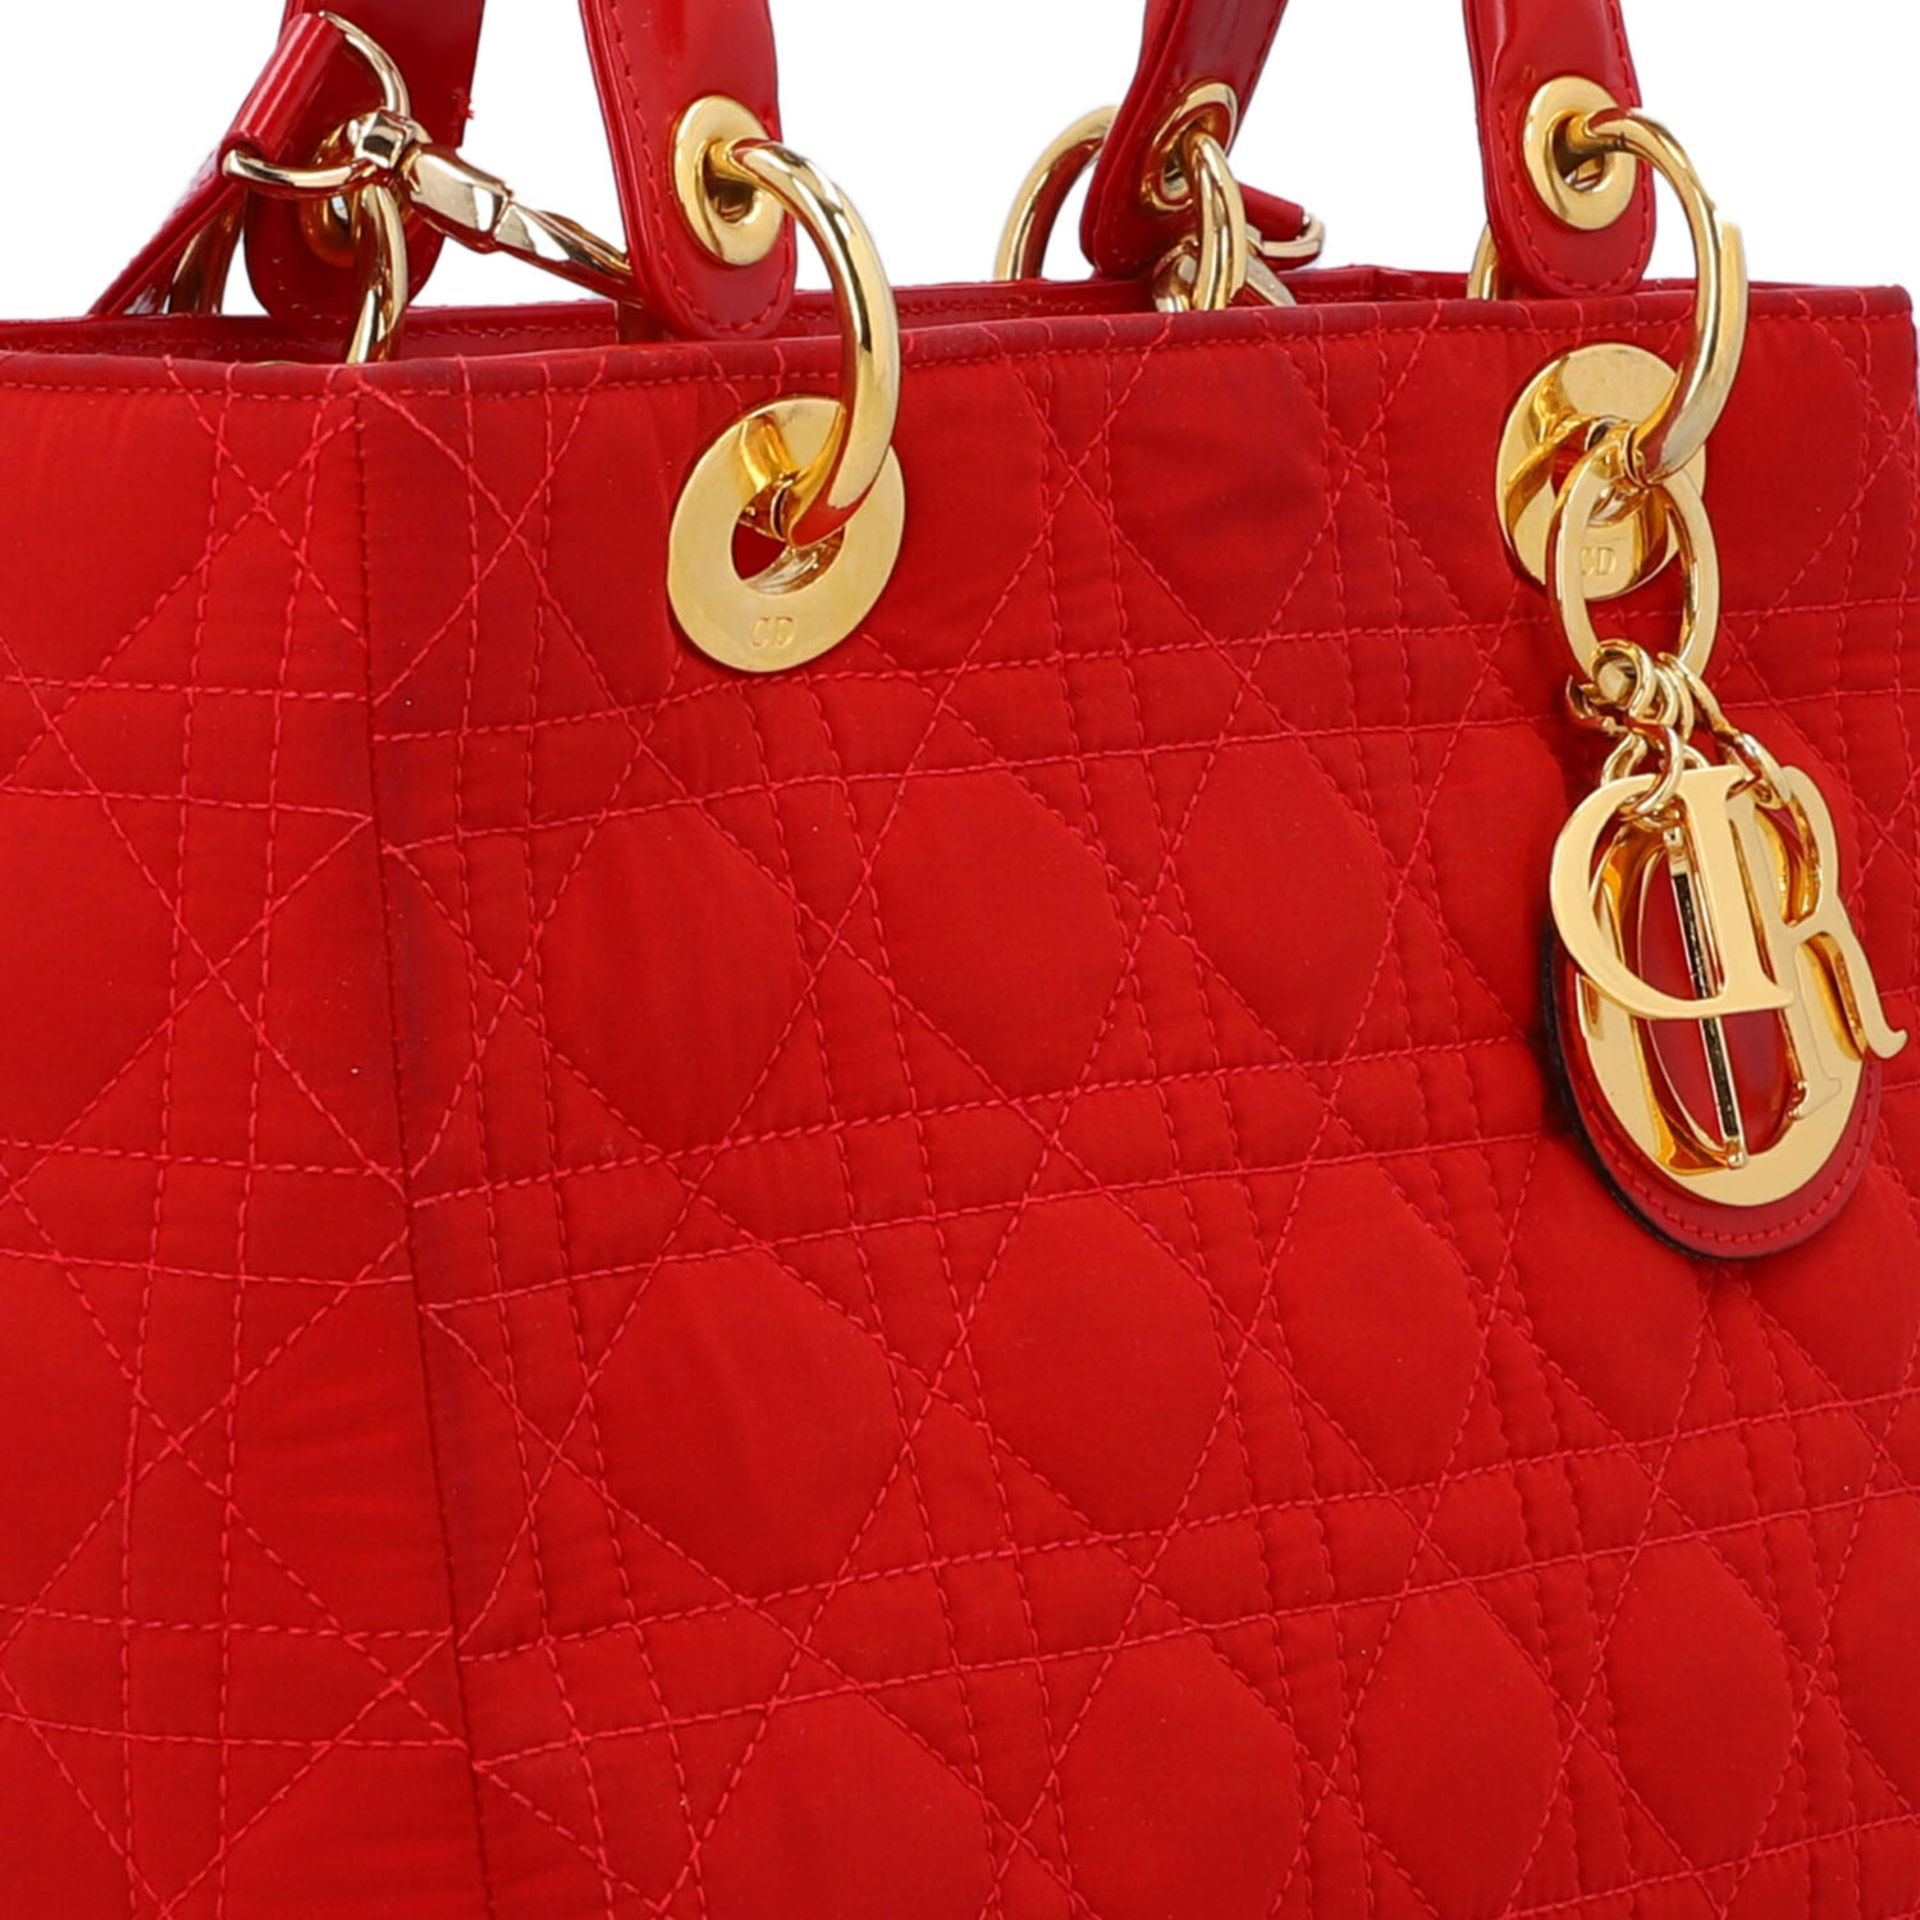 """CHRISTIAN DIOR Henkeltasche """"LADY DIOR"""", Koll.: 1997. Textil in Rot mit Cannage Steppu - Image 8 of 8"""